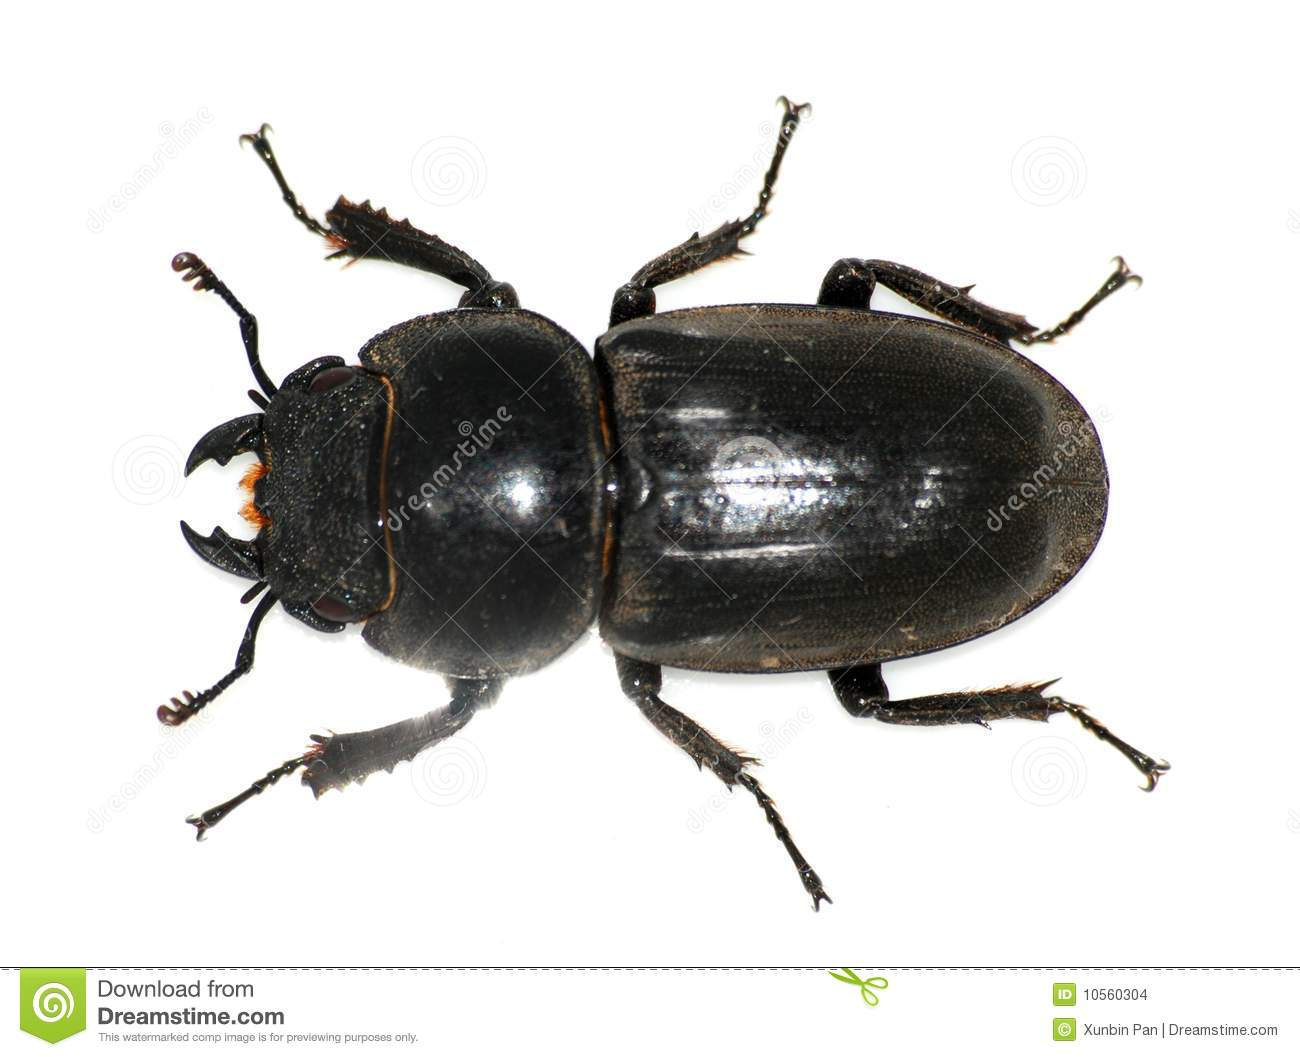 Female stag beetle stock photo. Image of deformed, biting ...